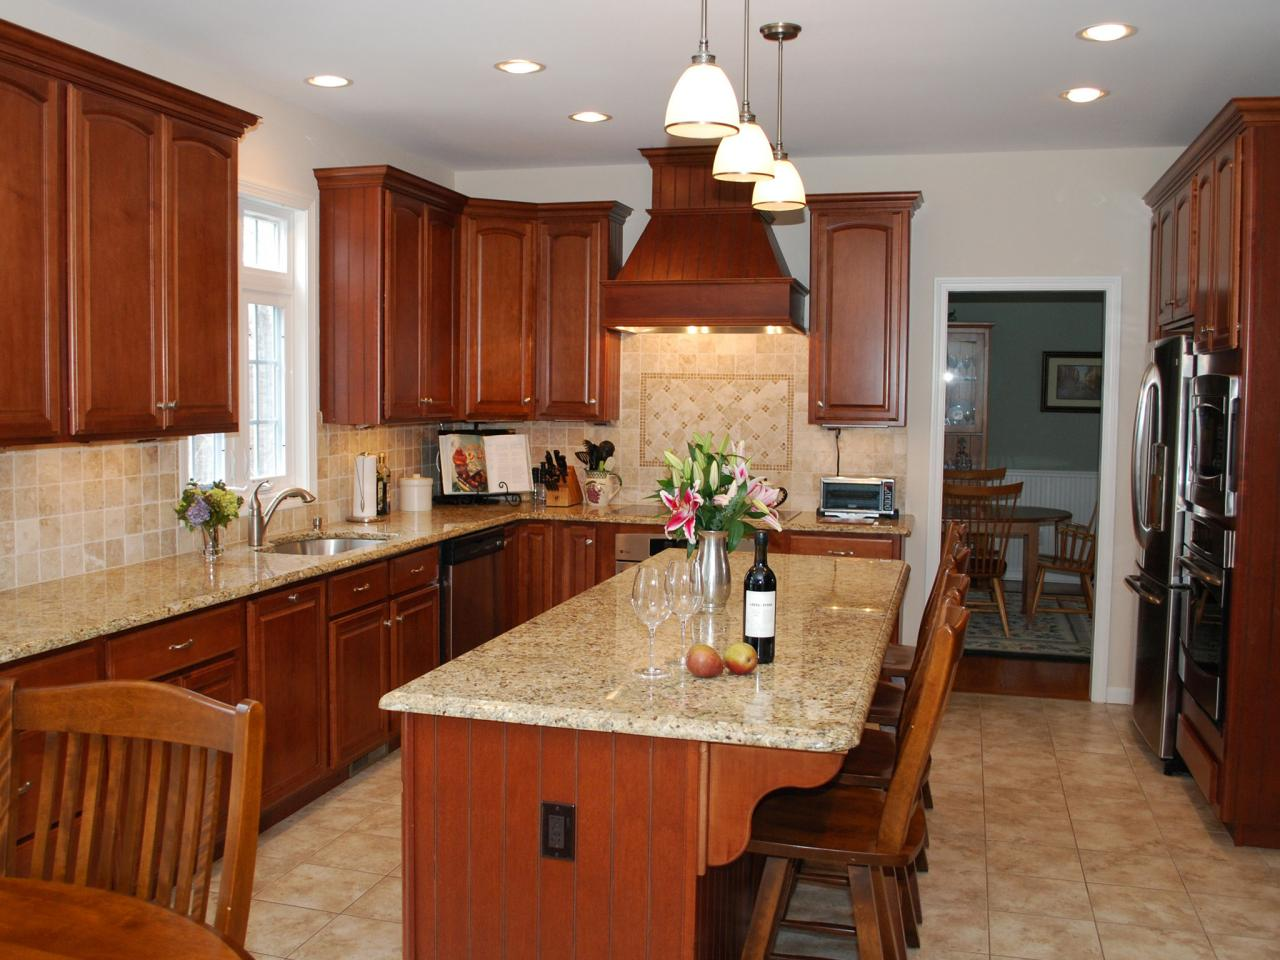 DP_Traditional-Kitchen-Granite-Countertops_4x3.jpg.rend.hgtvcom.1280.960